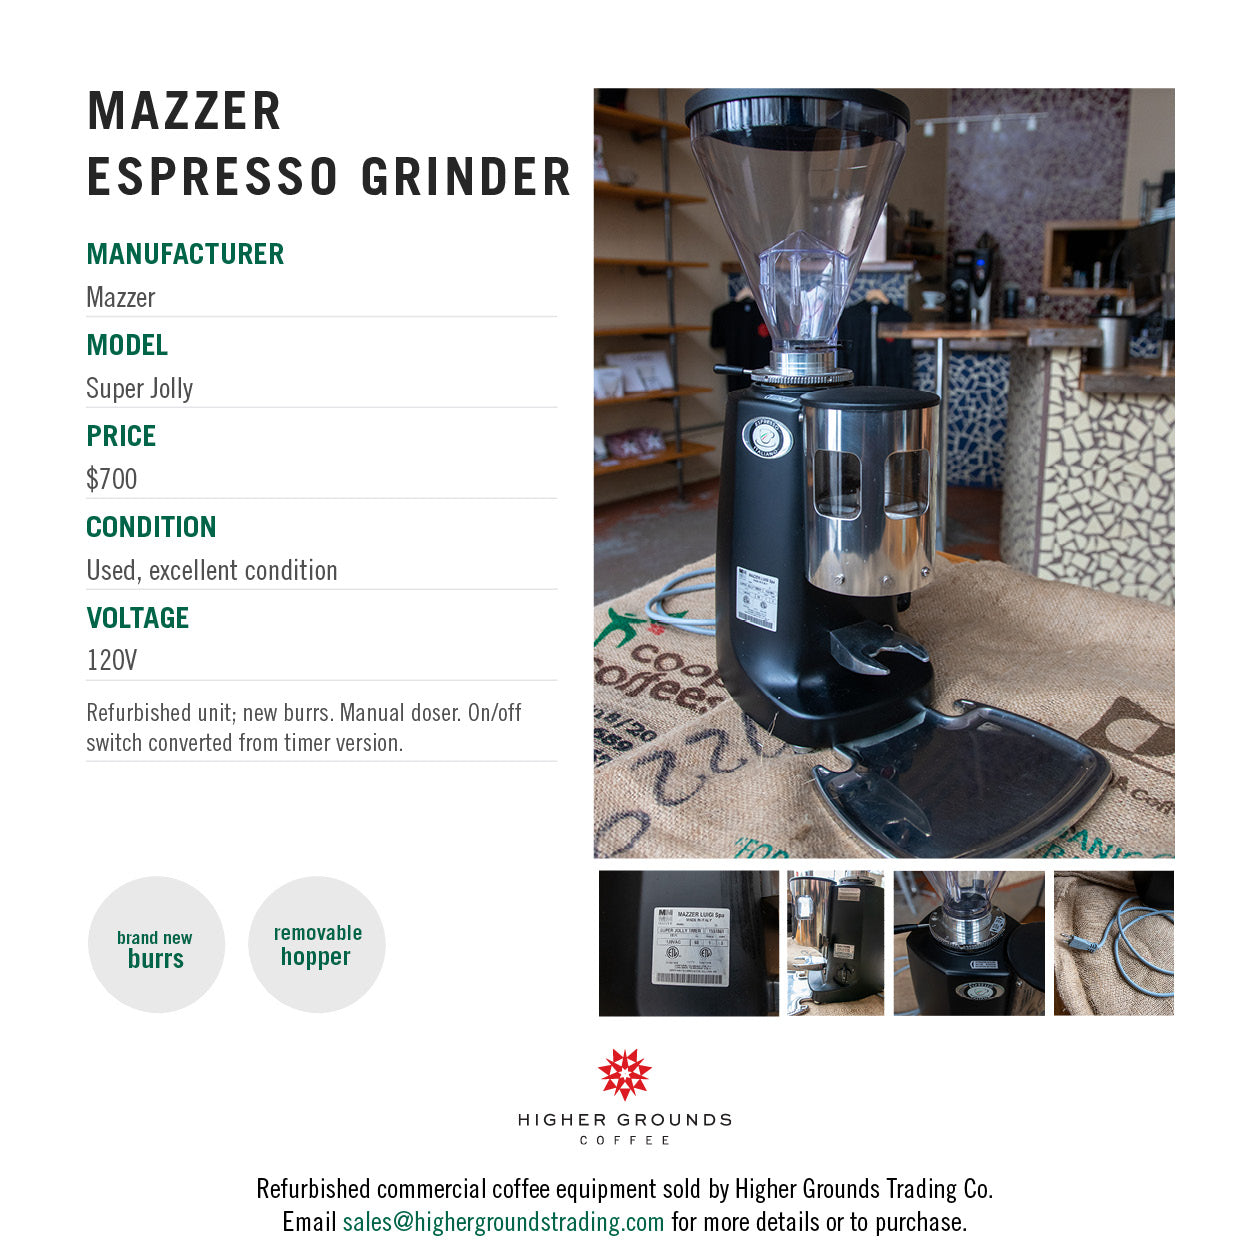 Mazzer Super Jolly espresso grinder for sale from Higher Grounds Coffee